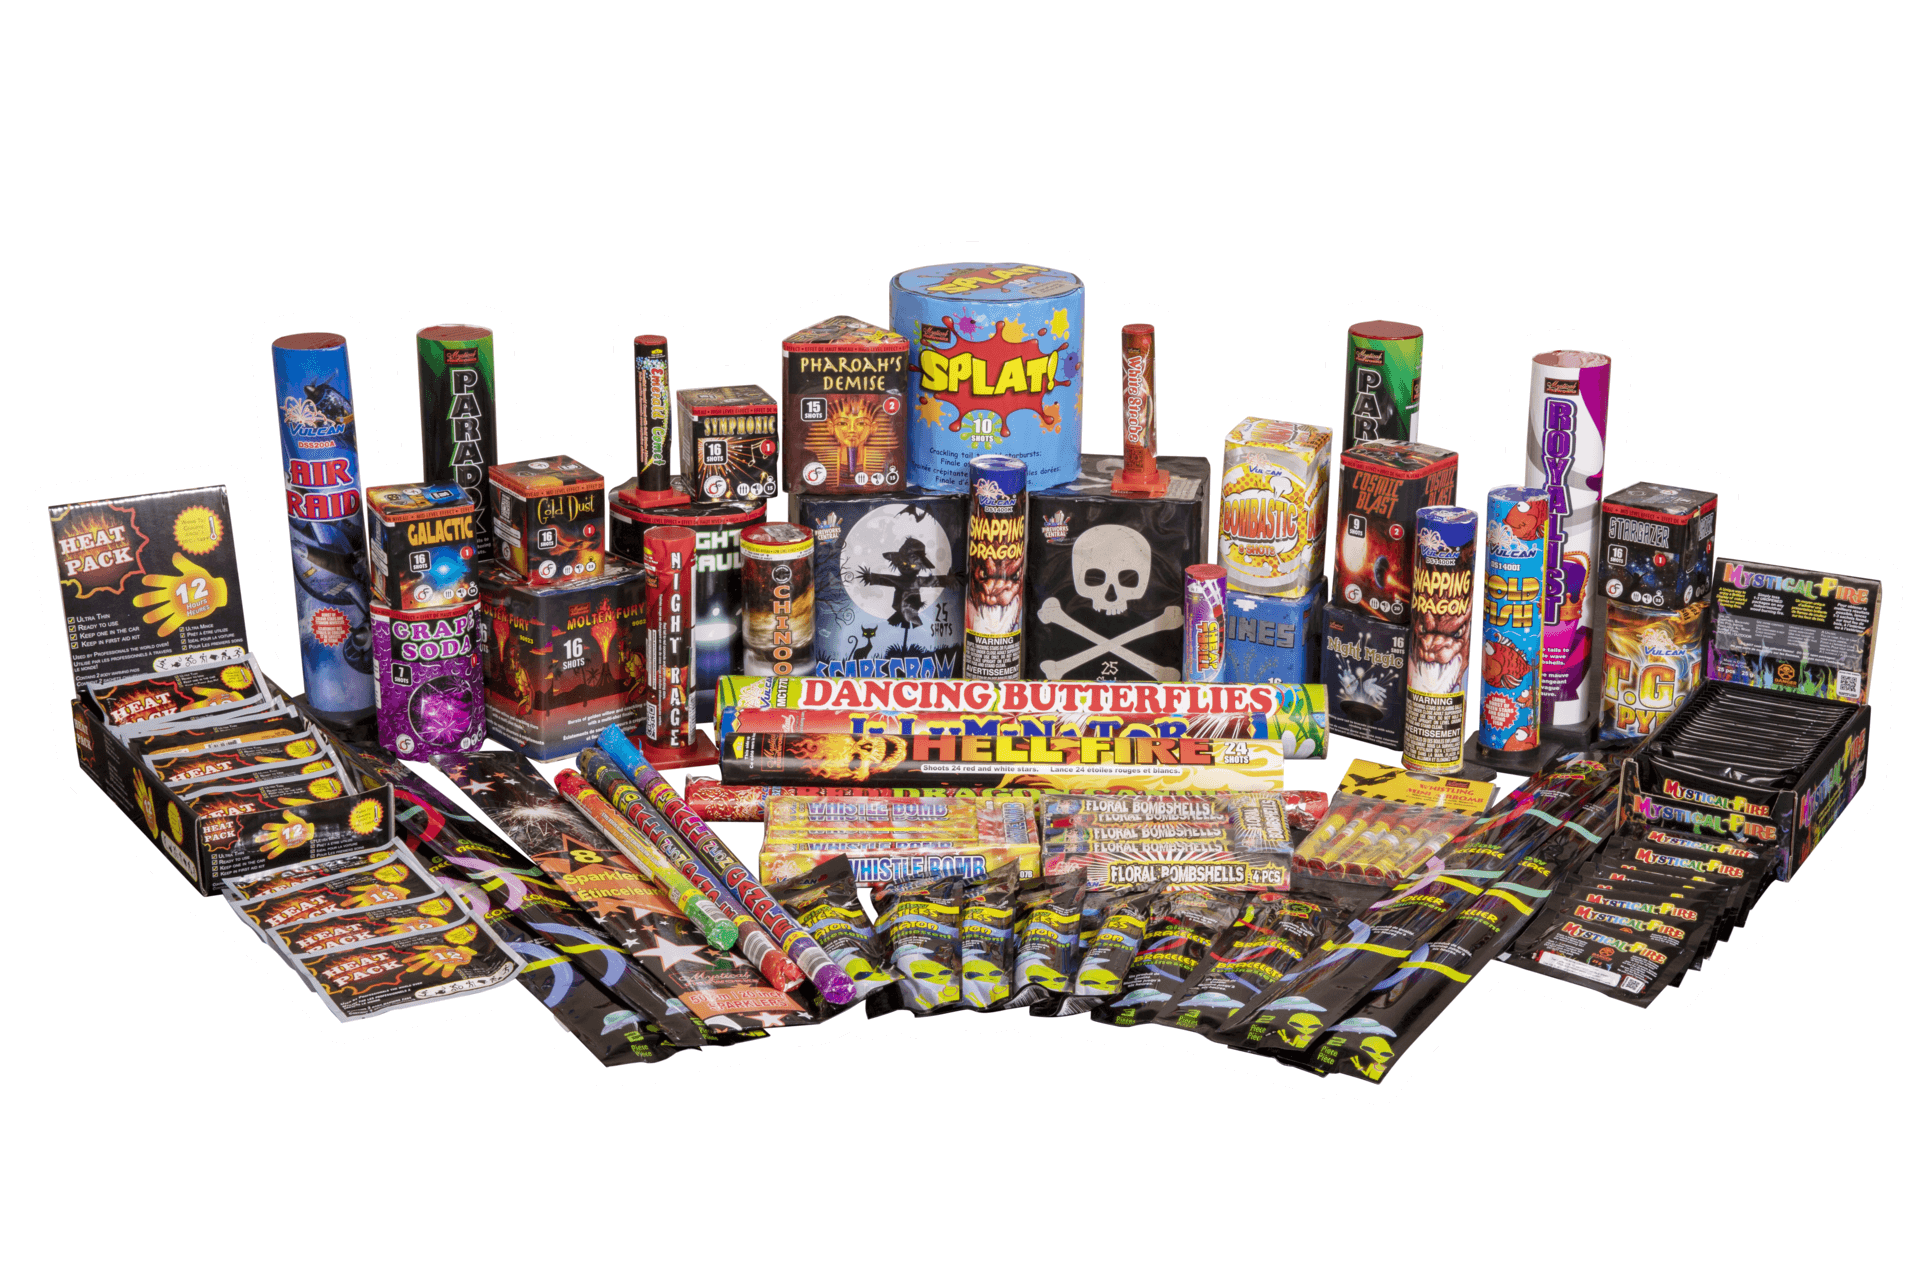 Fireworks Central Assortments Family (1-5 People) Camping Pack Family Pack